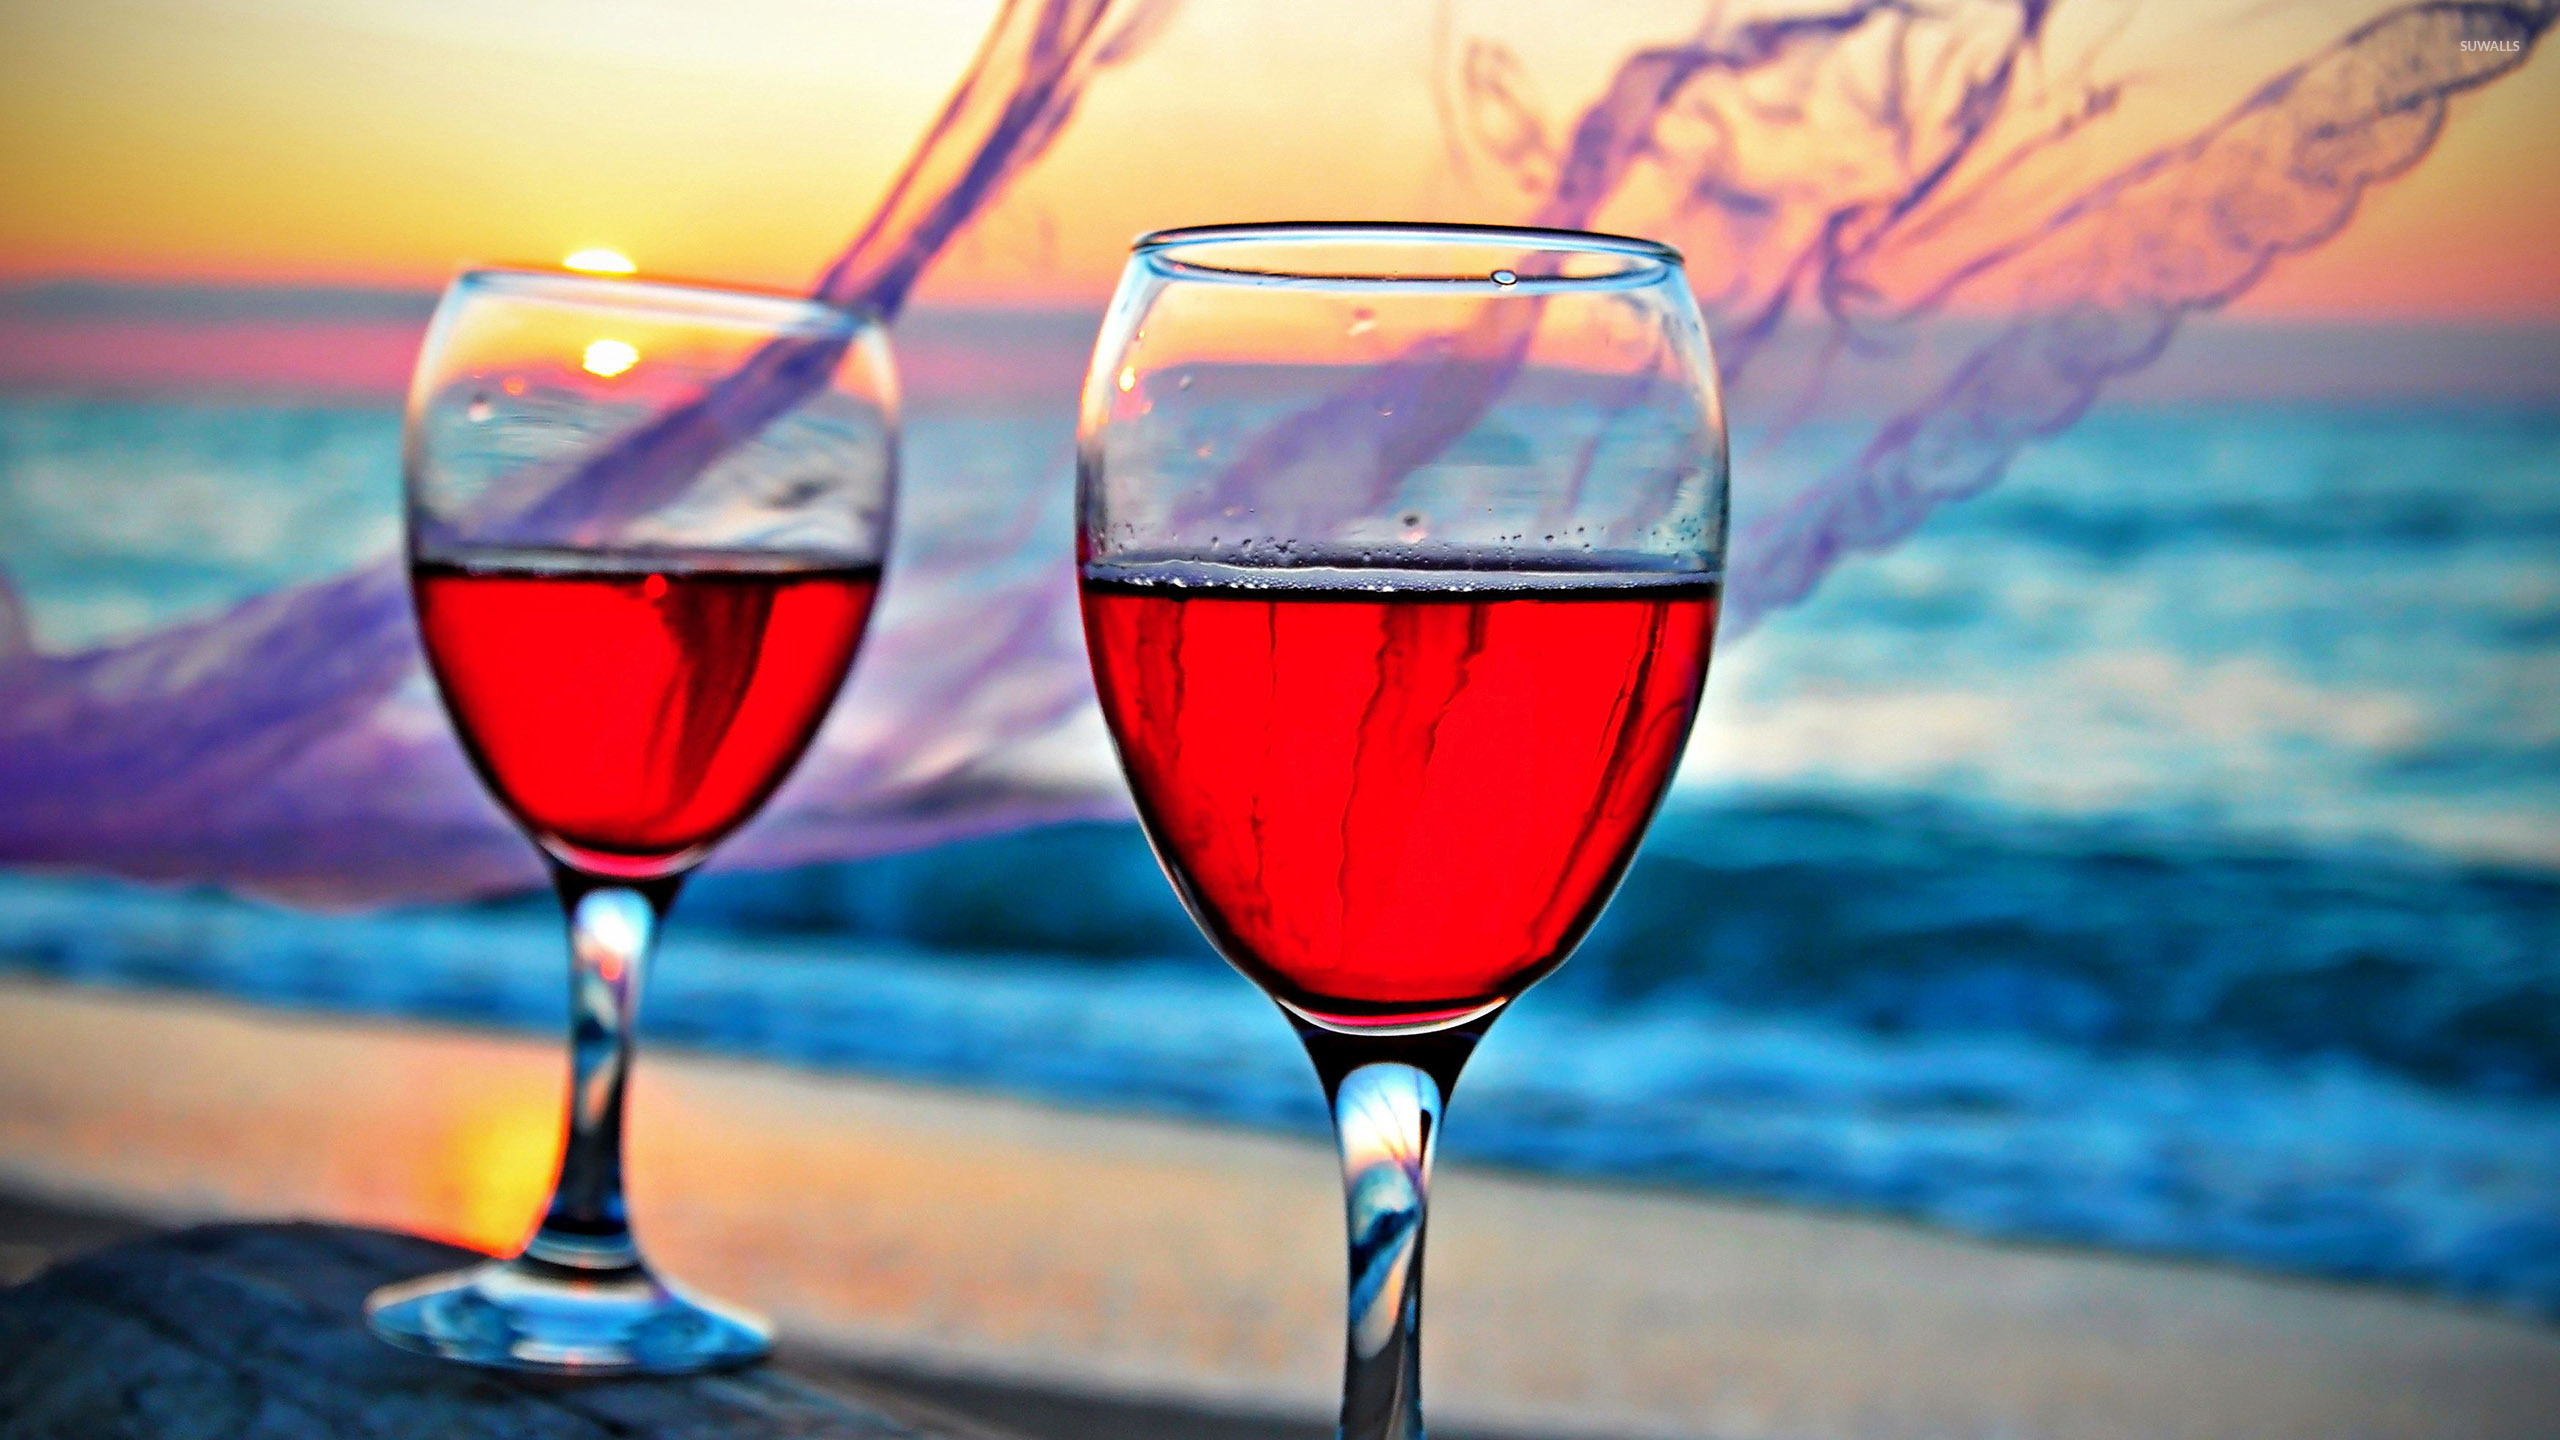 rose wine in the glasses wallpaper photography